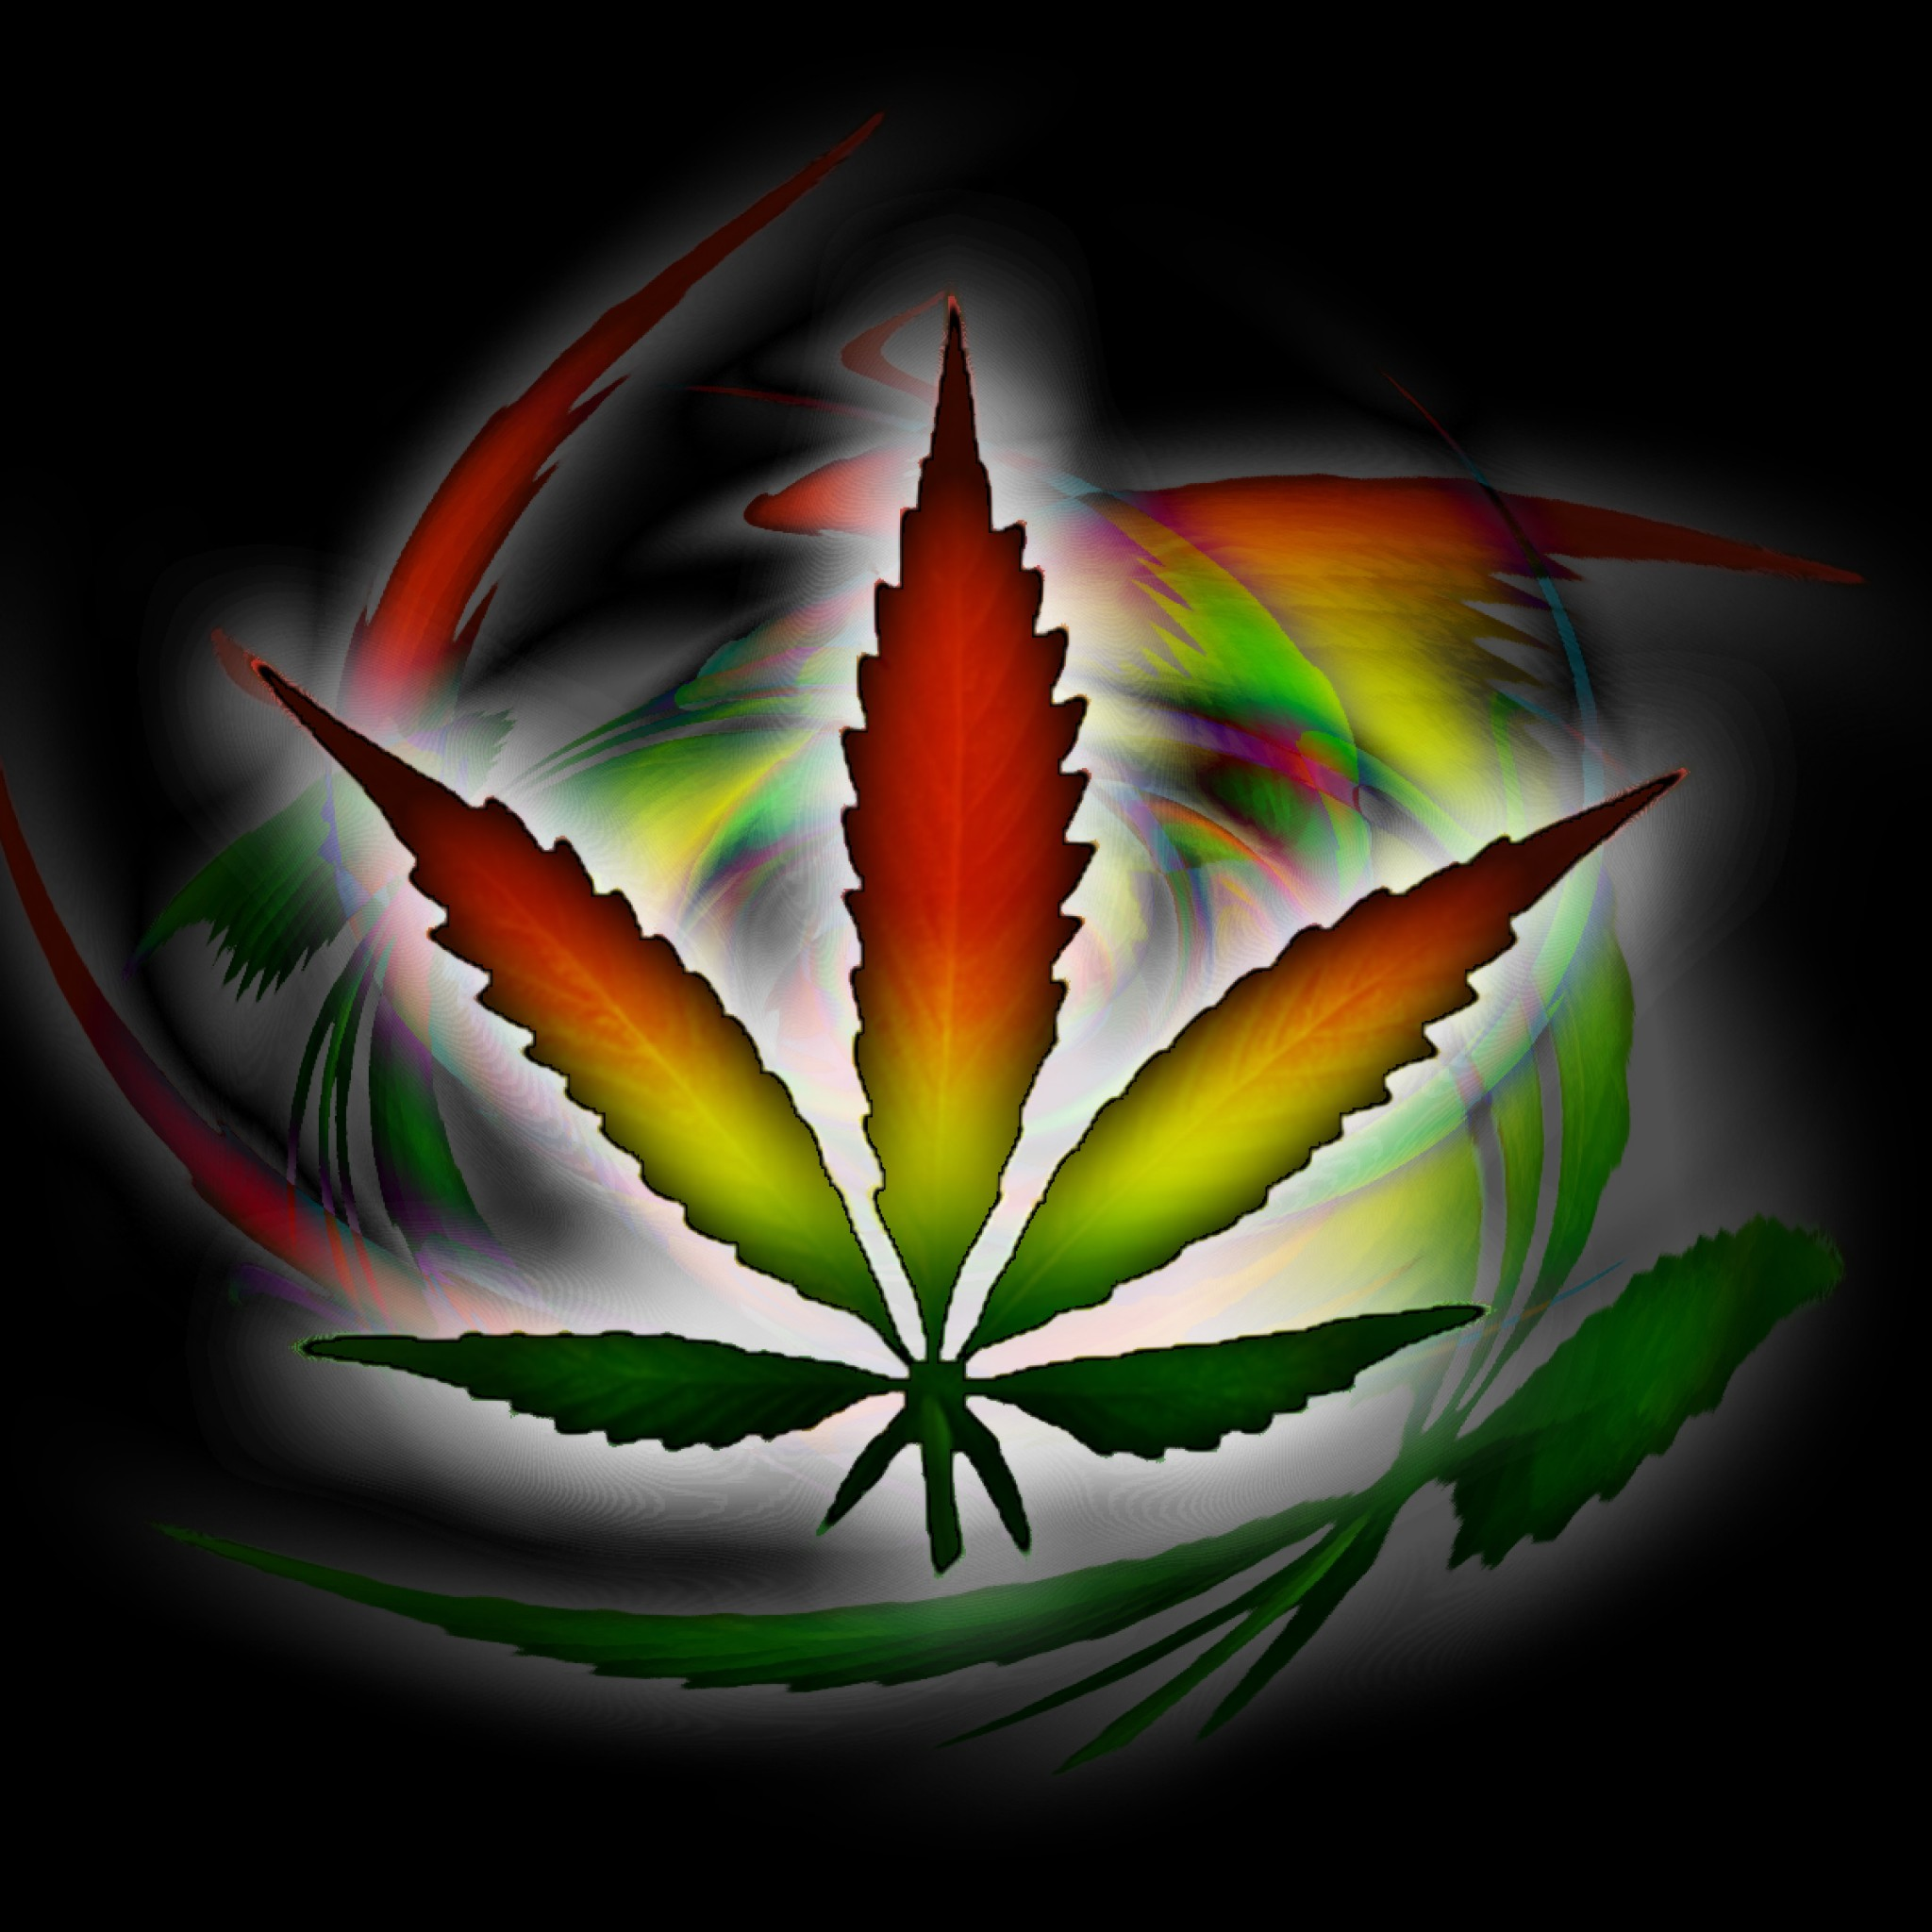 Multi Coloured HD Weed Wallpaper 2048x2048 Wallpapers